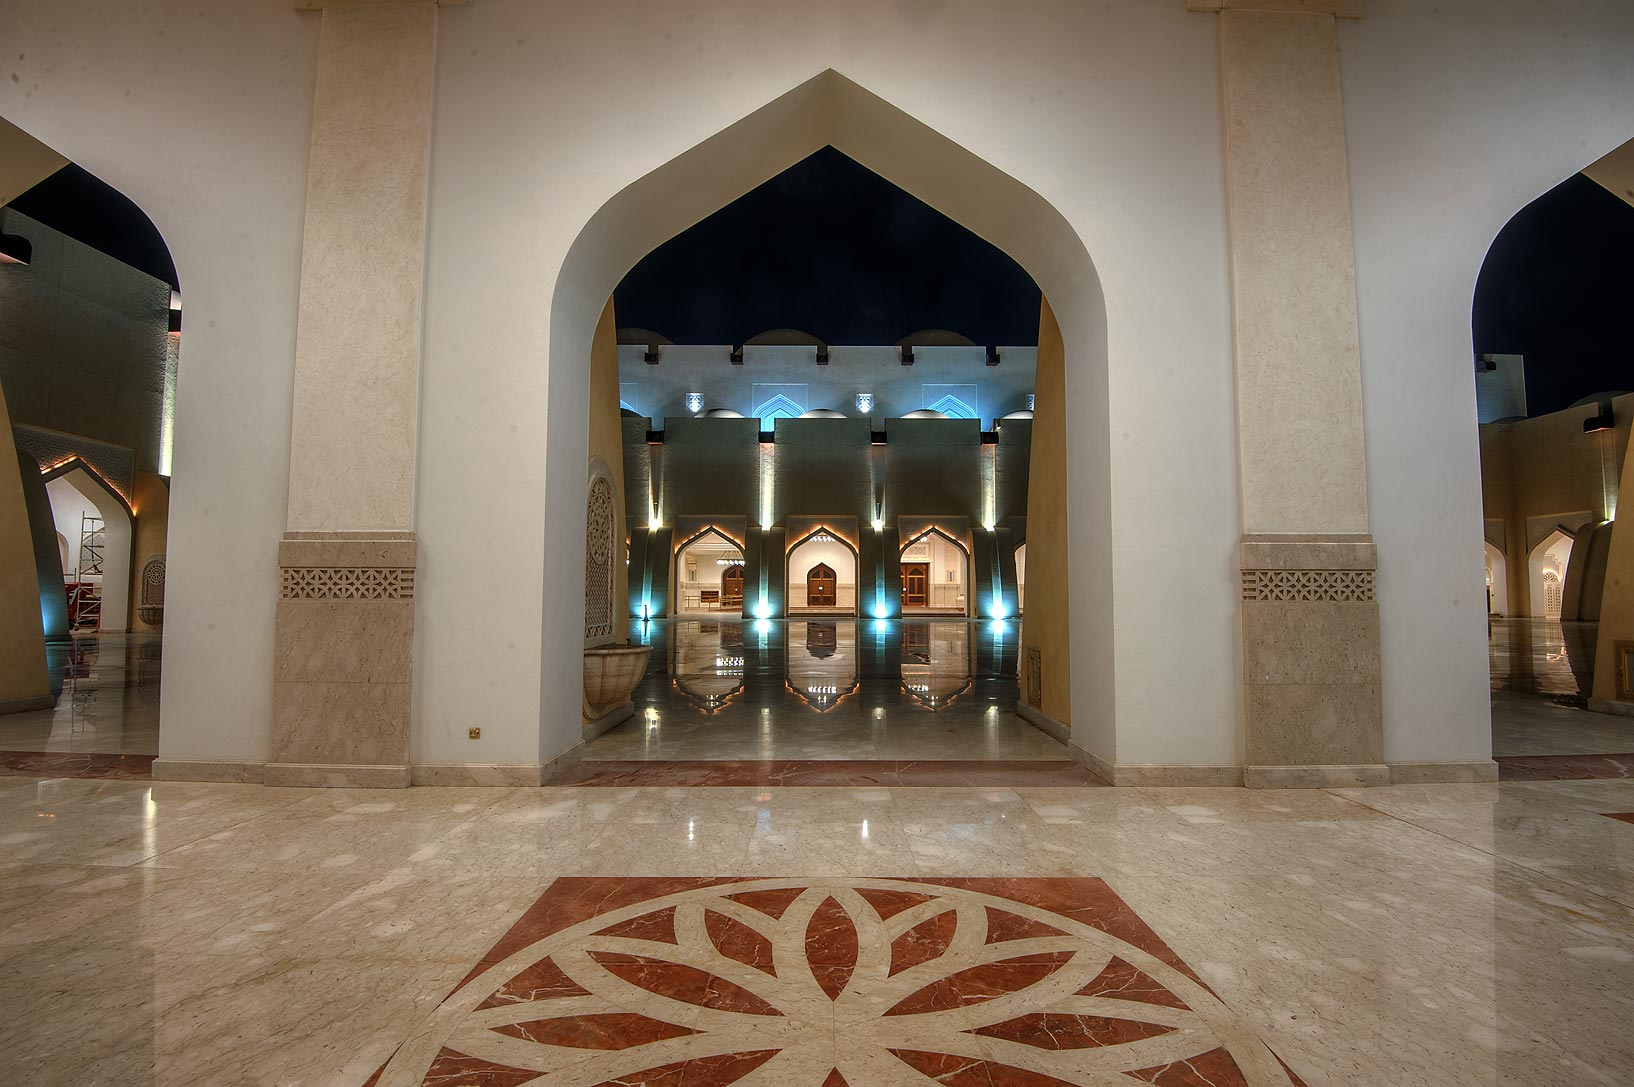 Arched gallery of State Mosque (Sheikh Muhammad Ibn Abdul Wahhab Mosque). Doha, Qatar